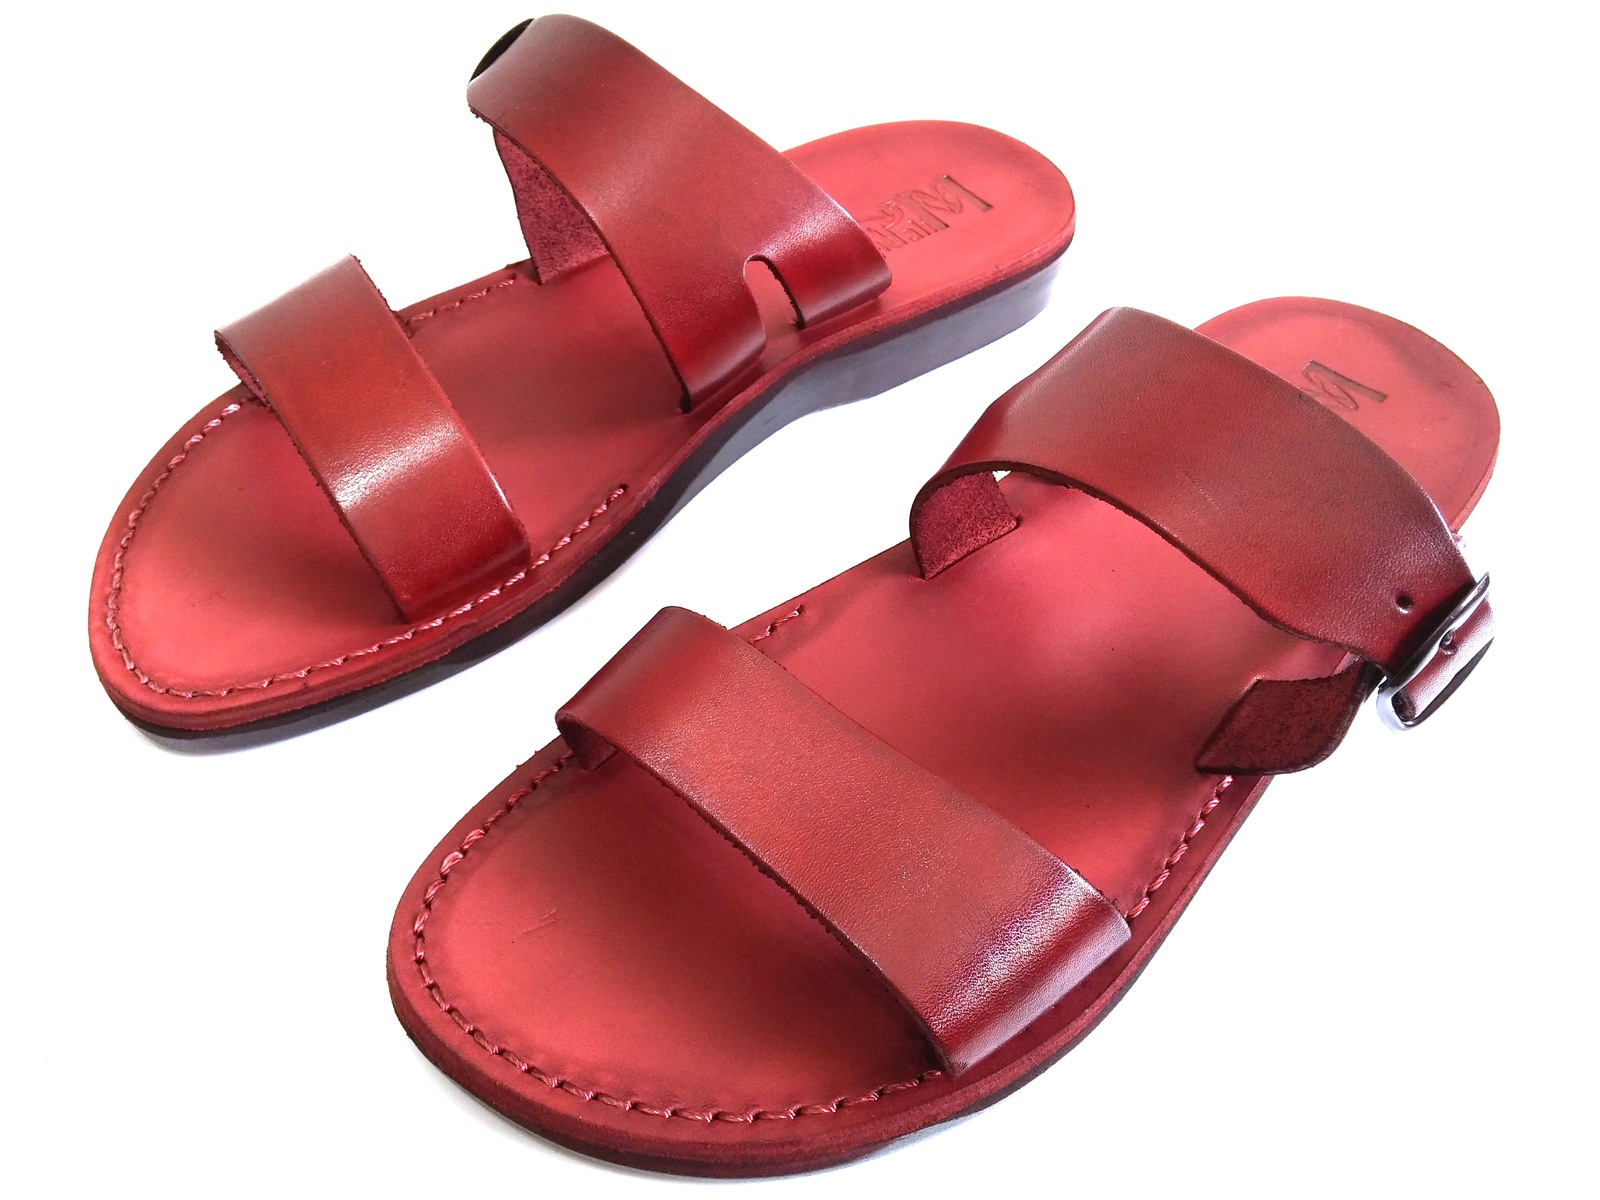 Leather Sandals for Men and Women DOUBLE by SANDALIM Biblical Greek Summer Roman